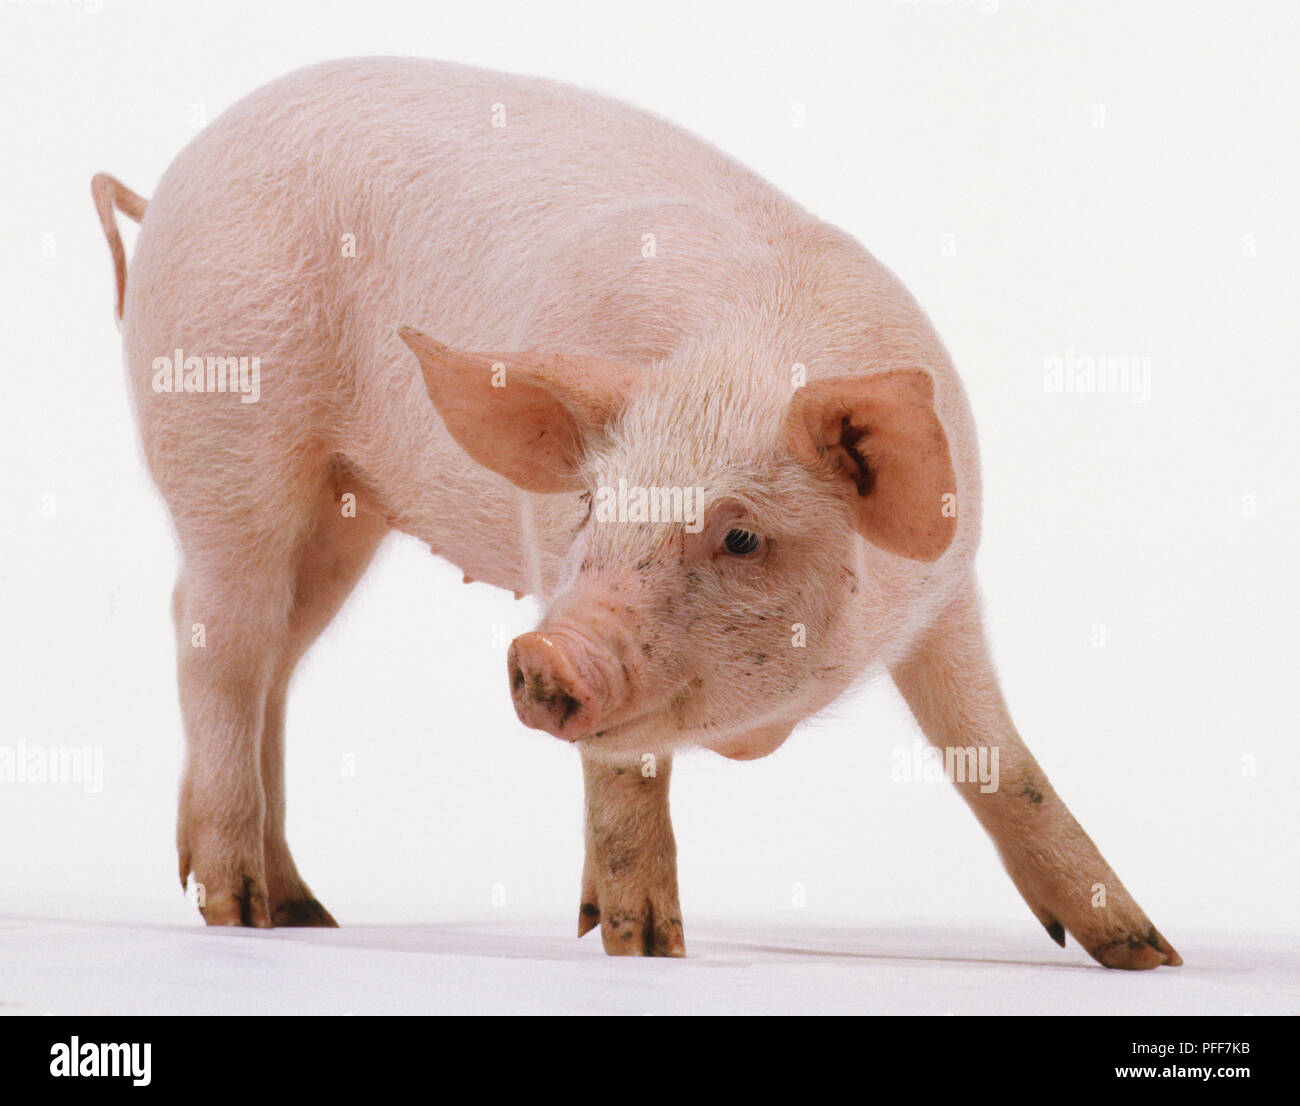 Piglet, aged 6 weeks, pink skin with fine white hairs, large ears, long snout, small eyes, four-toed, small tail, standing, neck bending around body, side view. - Stock Image